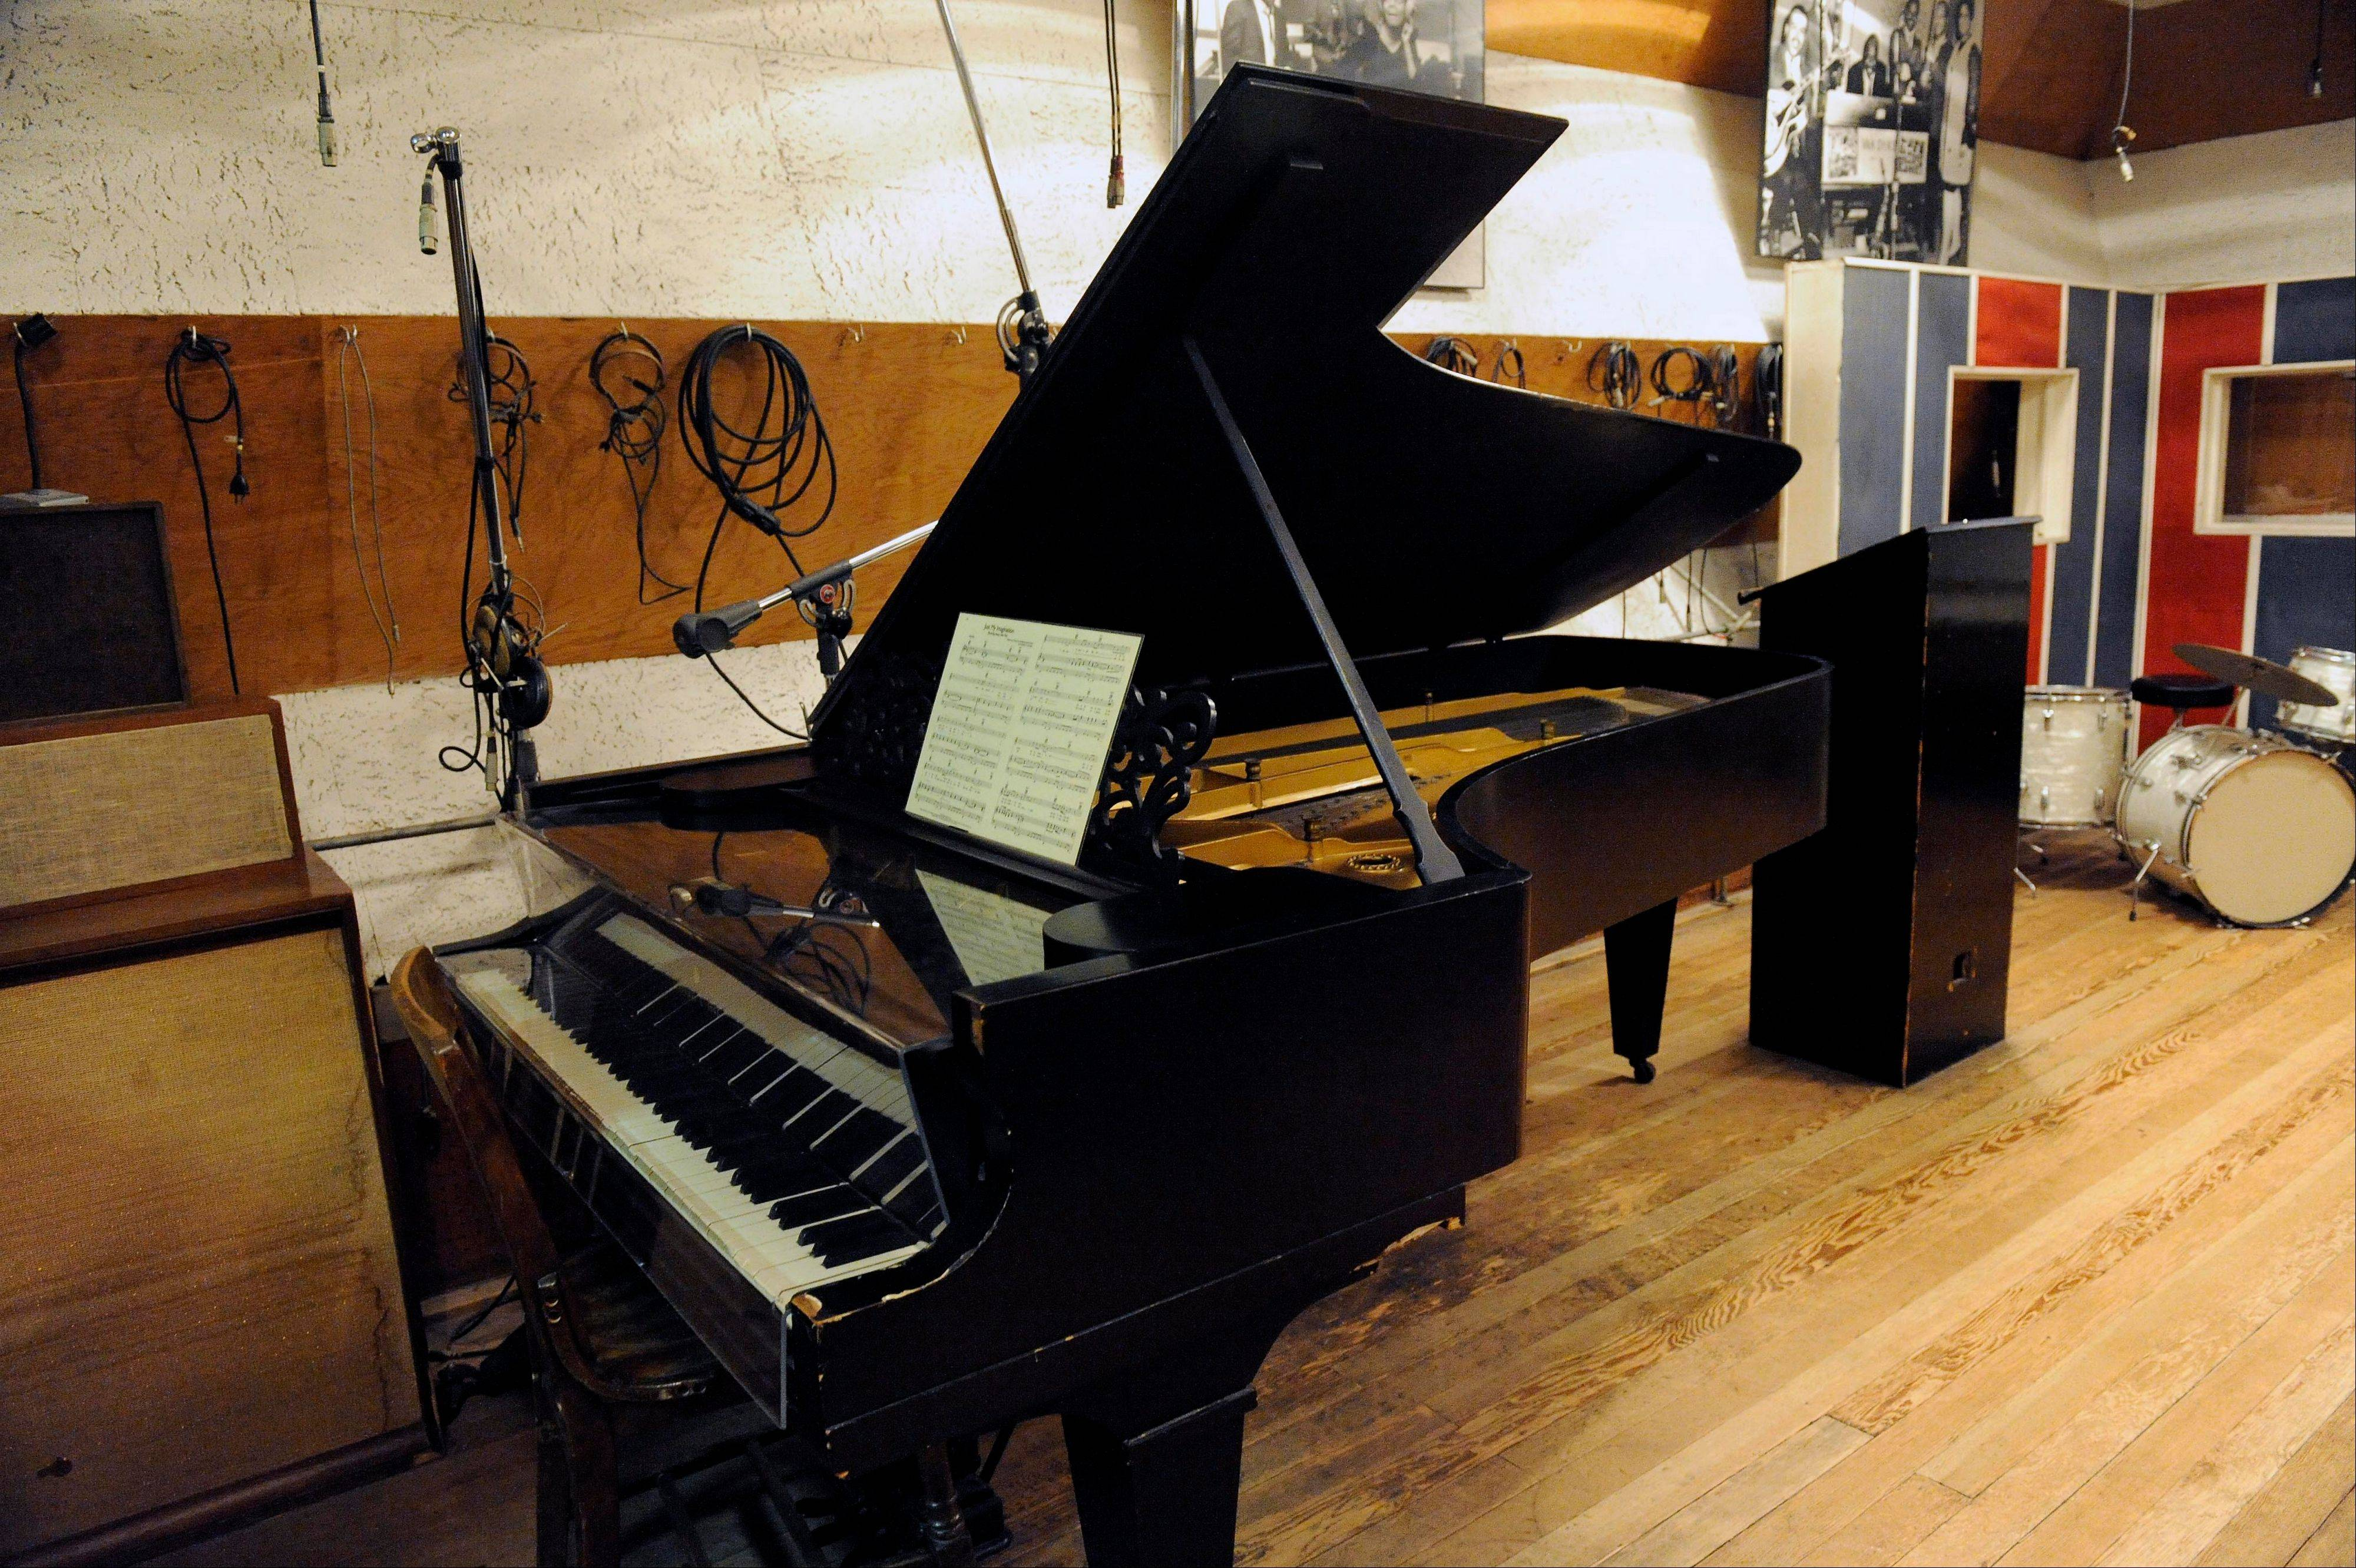 In this Oct. 31, 2011 photo, an 1877 Steinway grand piano used by Motown artists is seen in a Motown recording studio in Detroit. Now that an 1877 Steinway grand piano used by Motown artists has been restored, it�s time for the historic instrument to be played. And who better to do that than ex-Beatle Paul McCartney, who orchestrated the piano�s refurbishment, and Berry Gordy, the architect of the Motown music label.